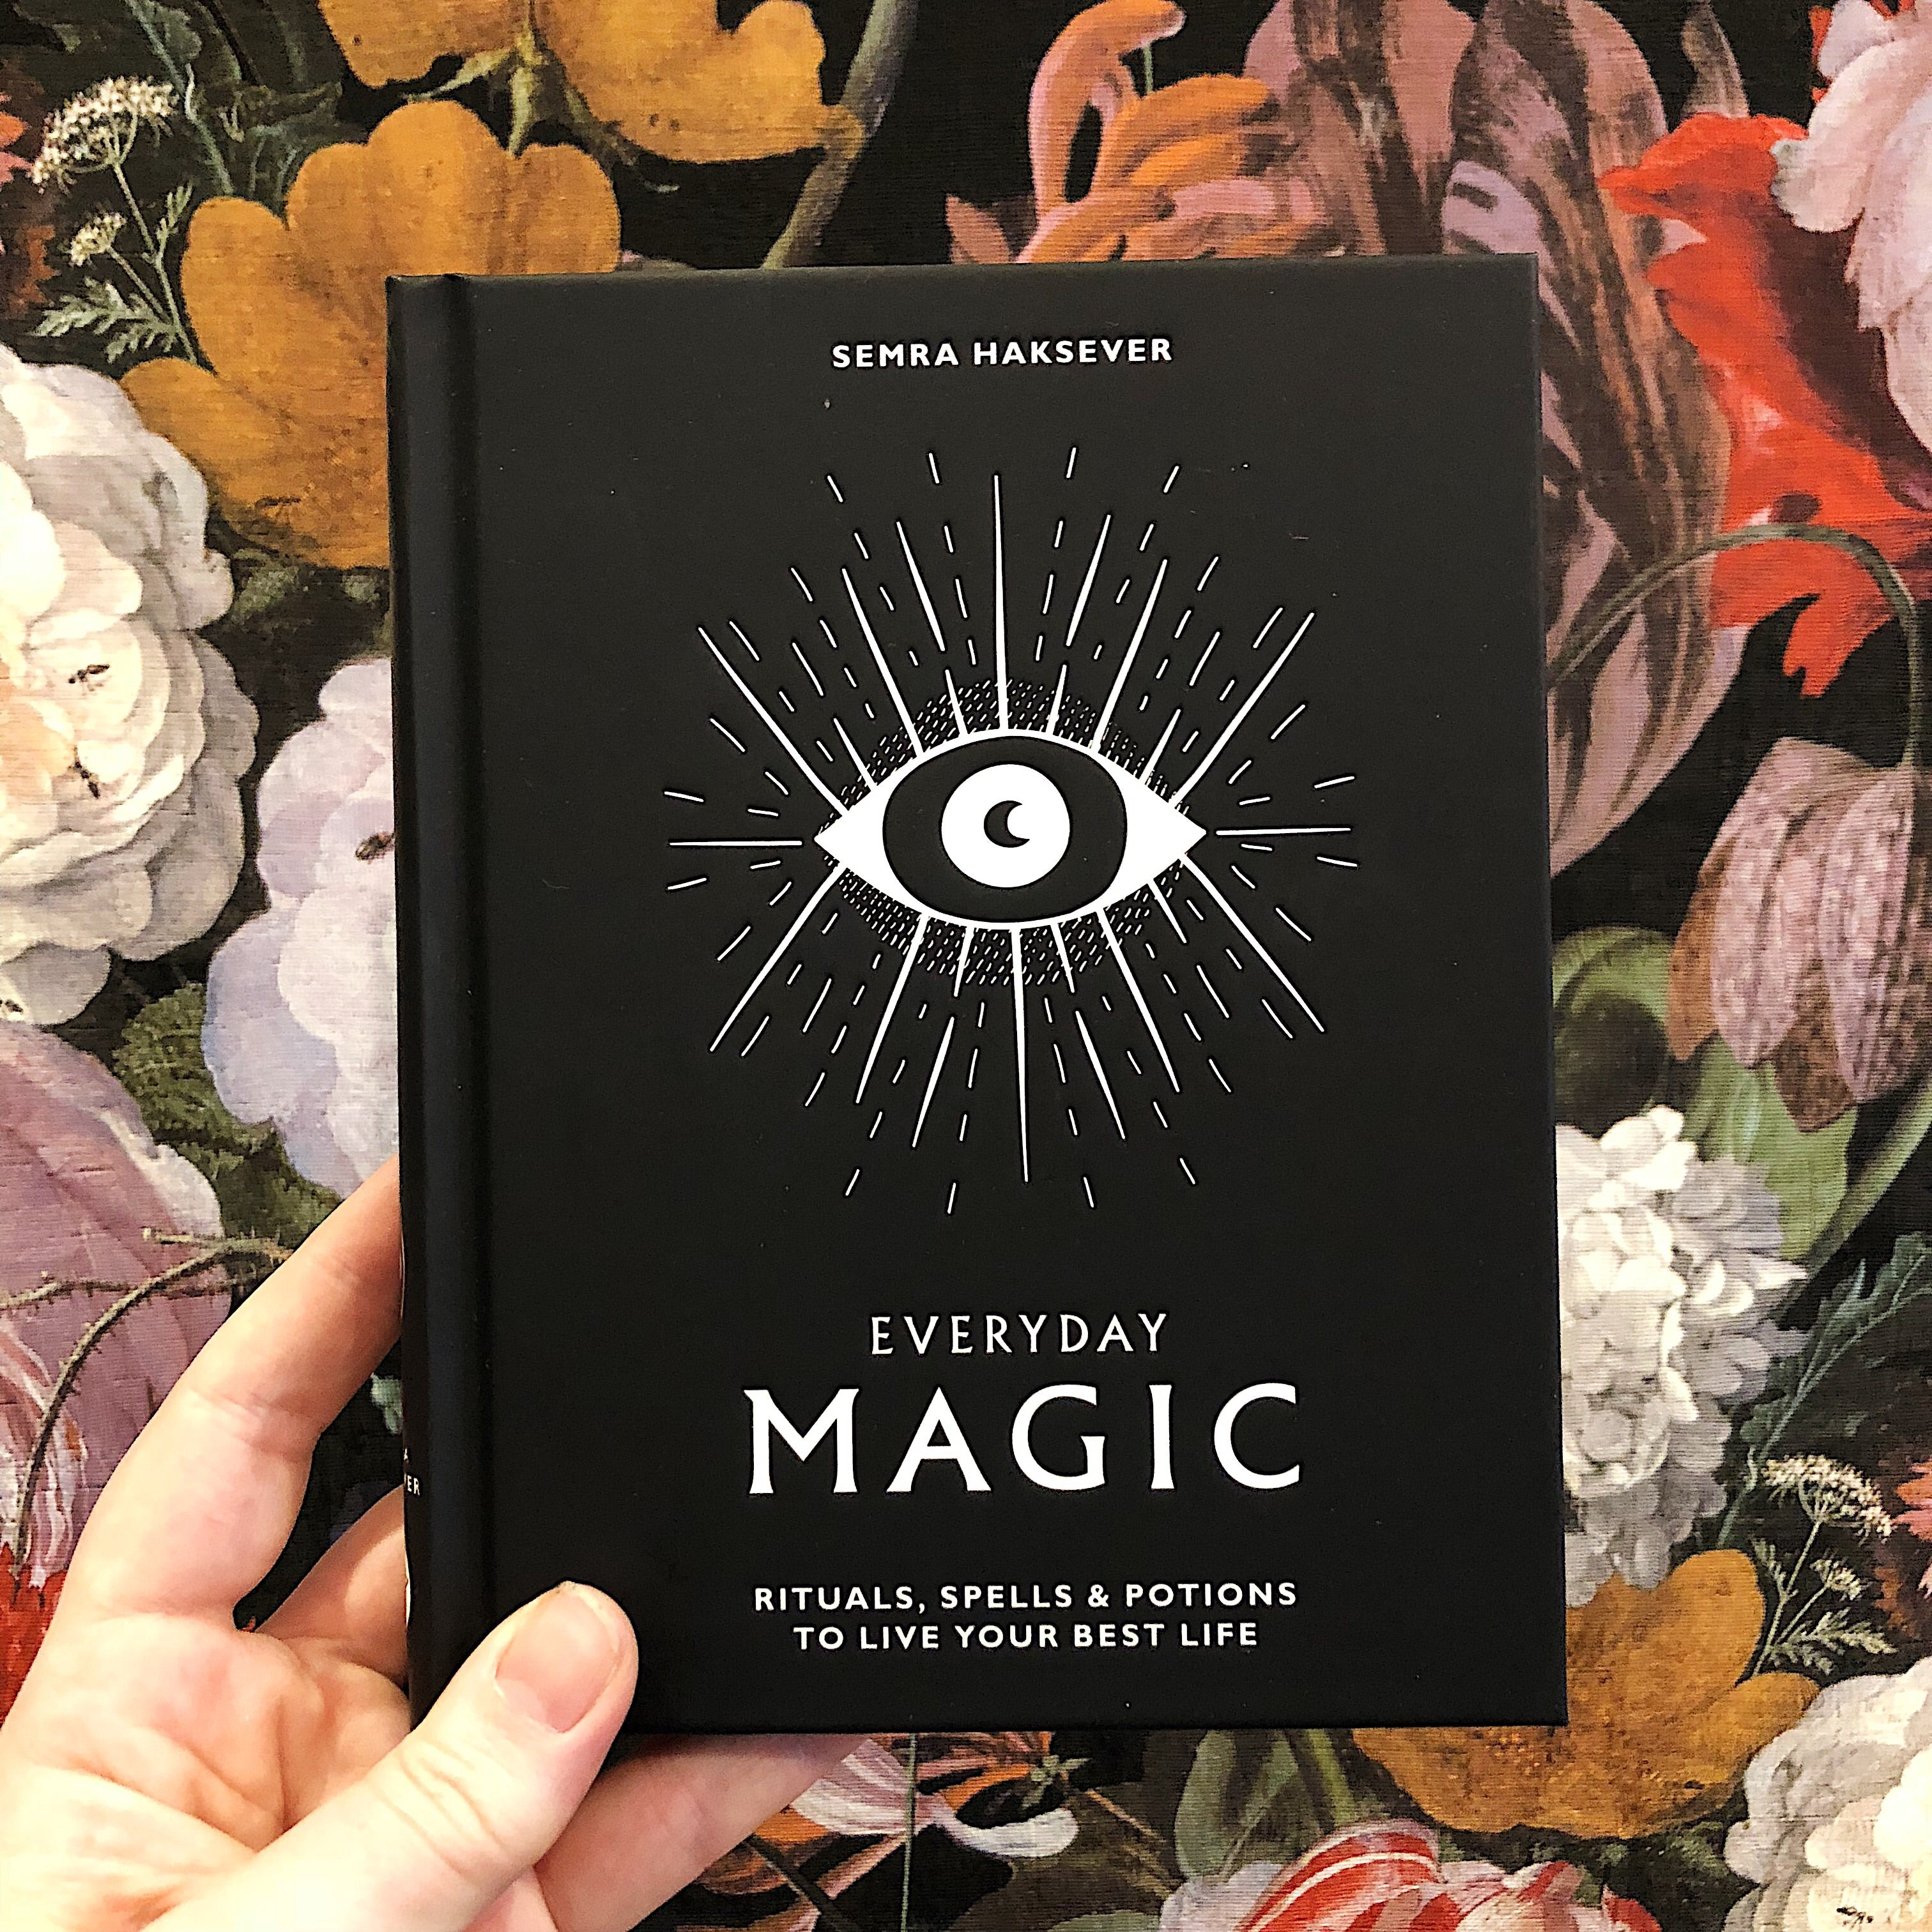 Everyday Magic: Rituals, Spells & Potions to Live Your Best Life // By Semra Haksever